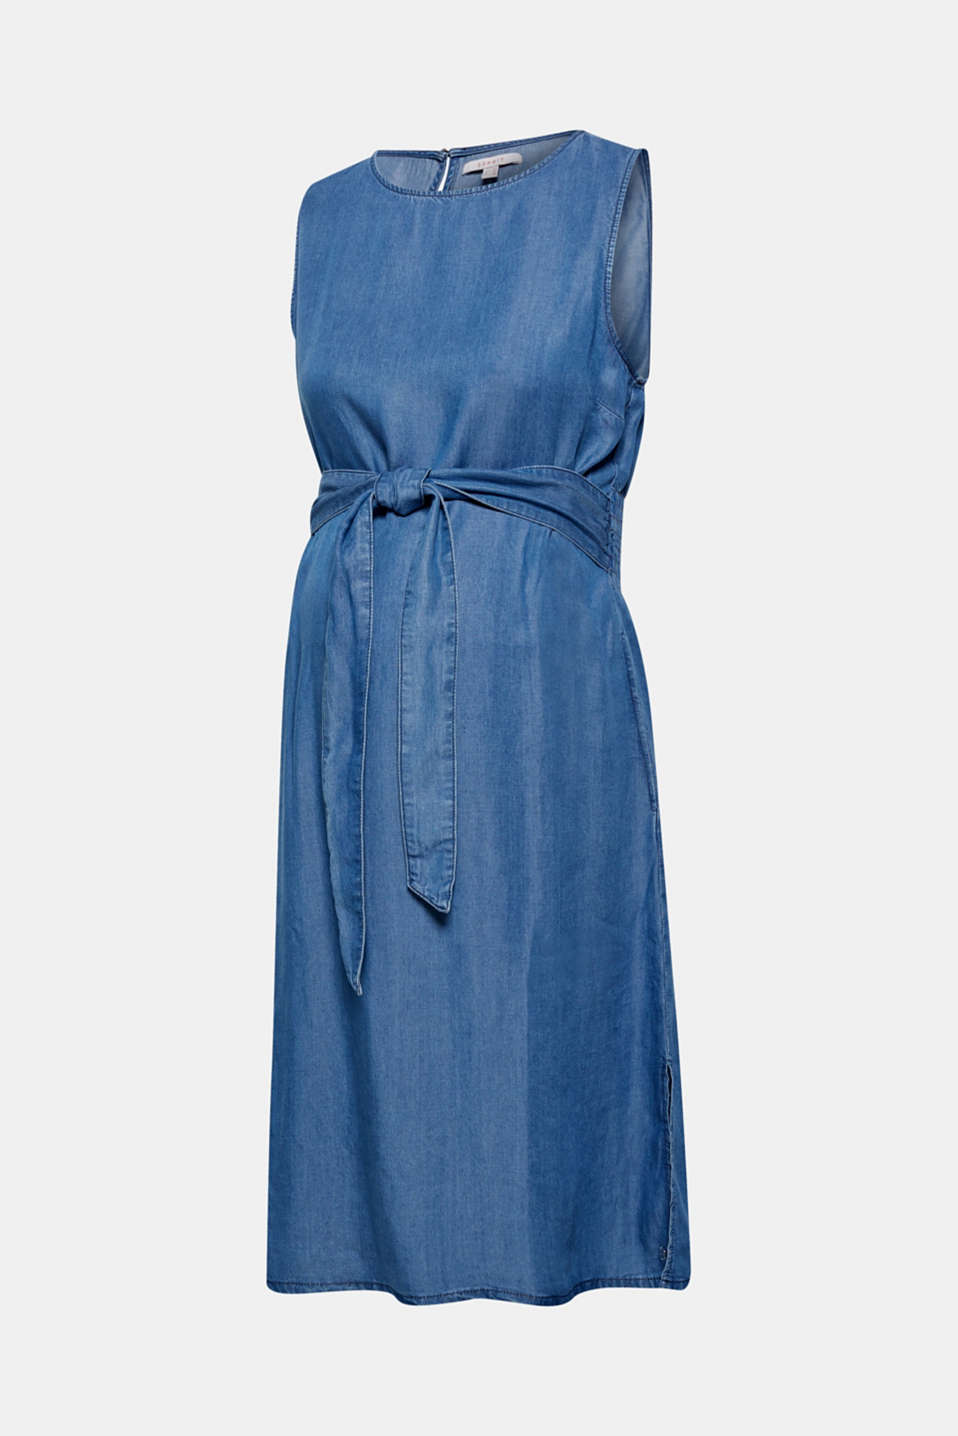 Denim dress with a belt, 100% lyocell, LCLIGHT BLUE, detail image number 6